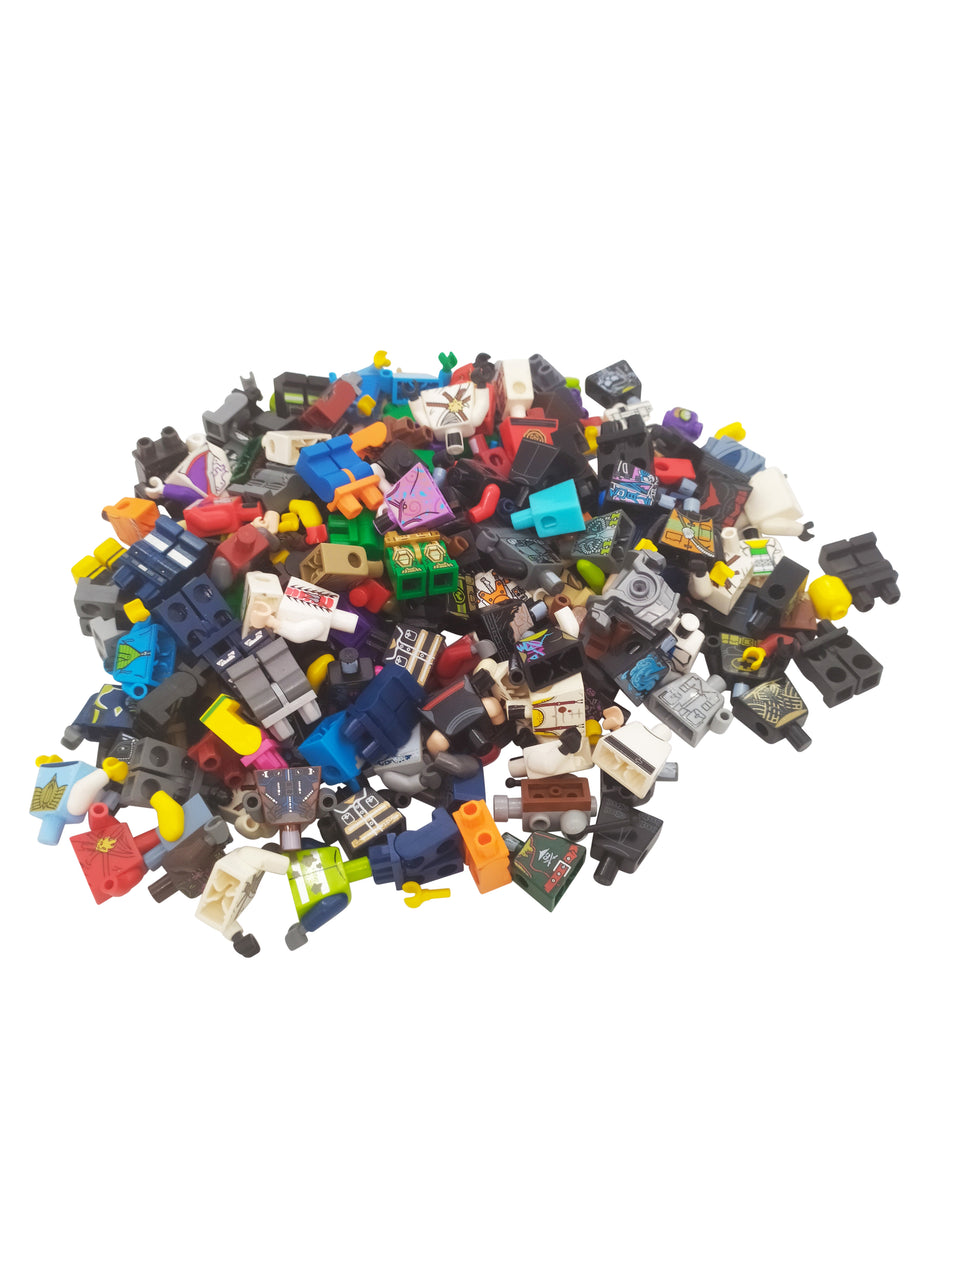 big lot of lego Minifigures parts - torso, legs